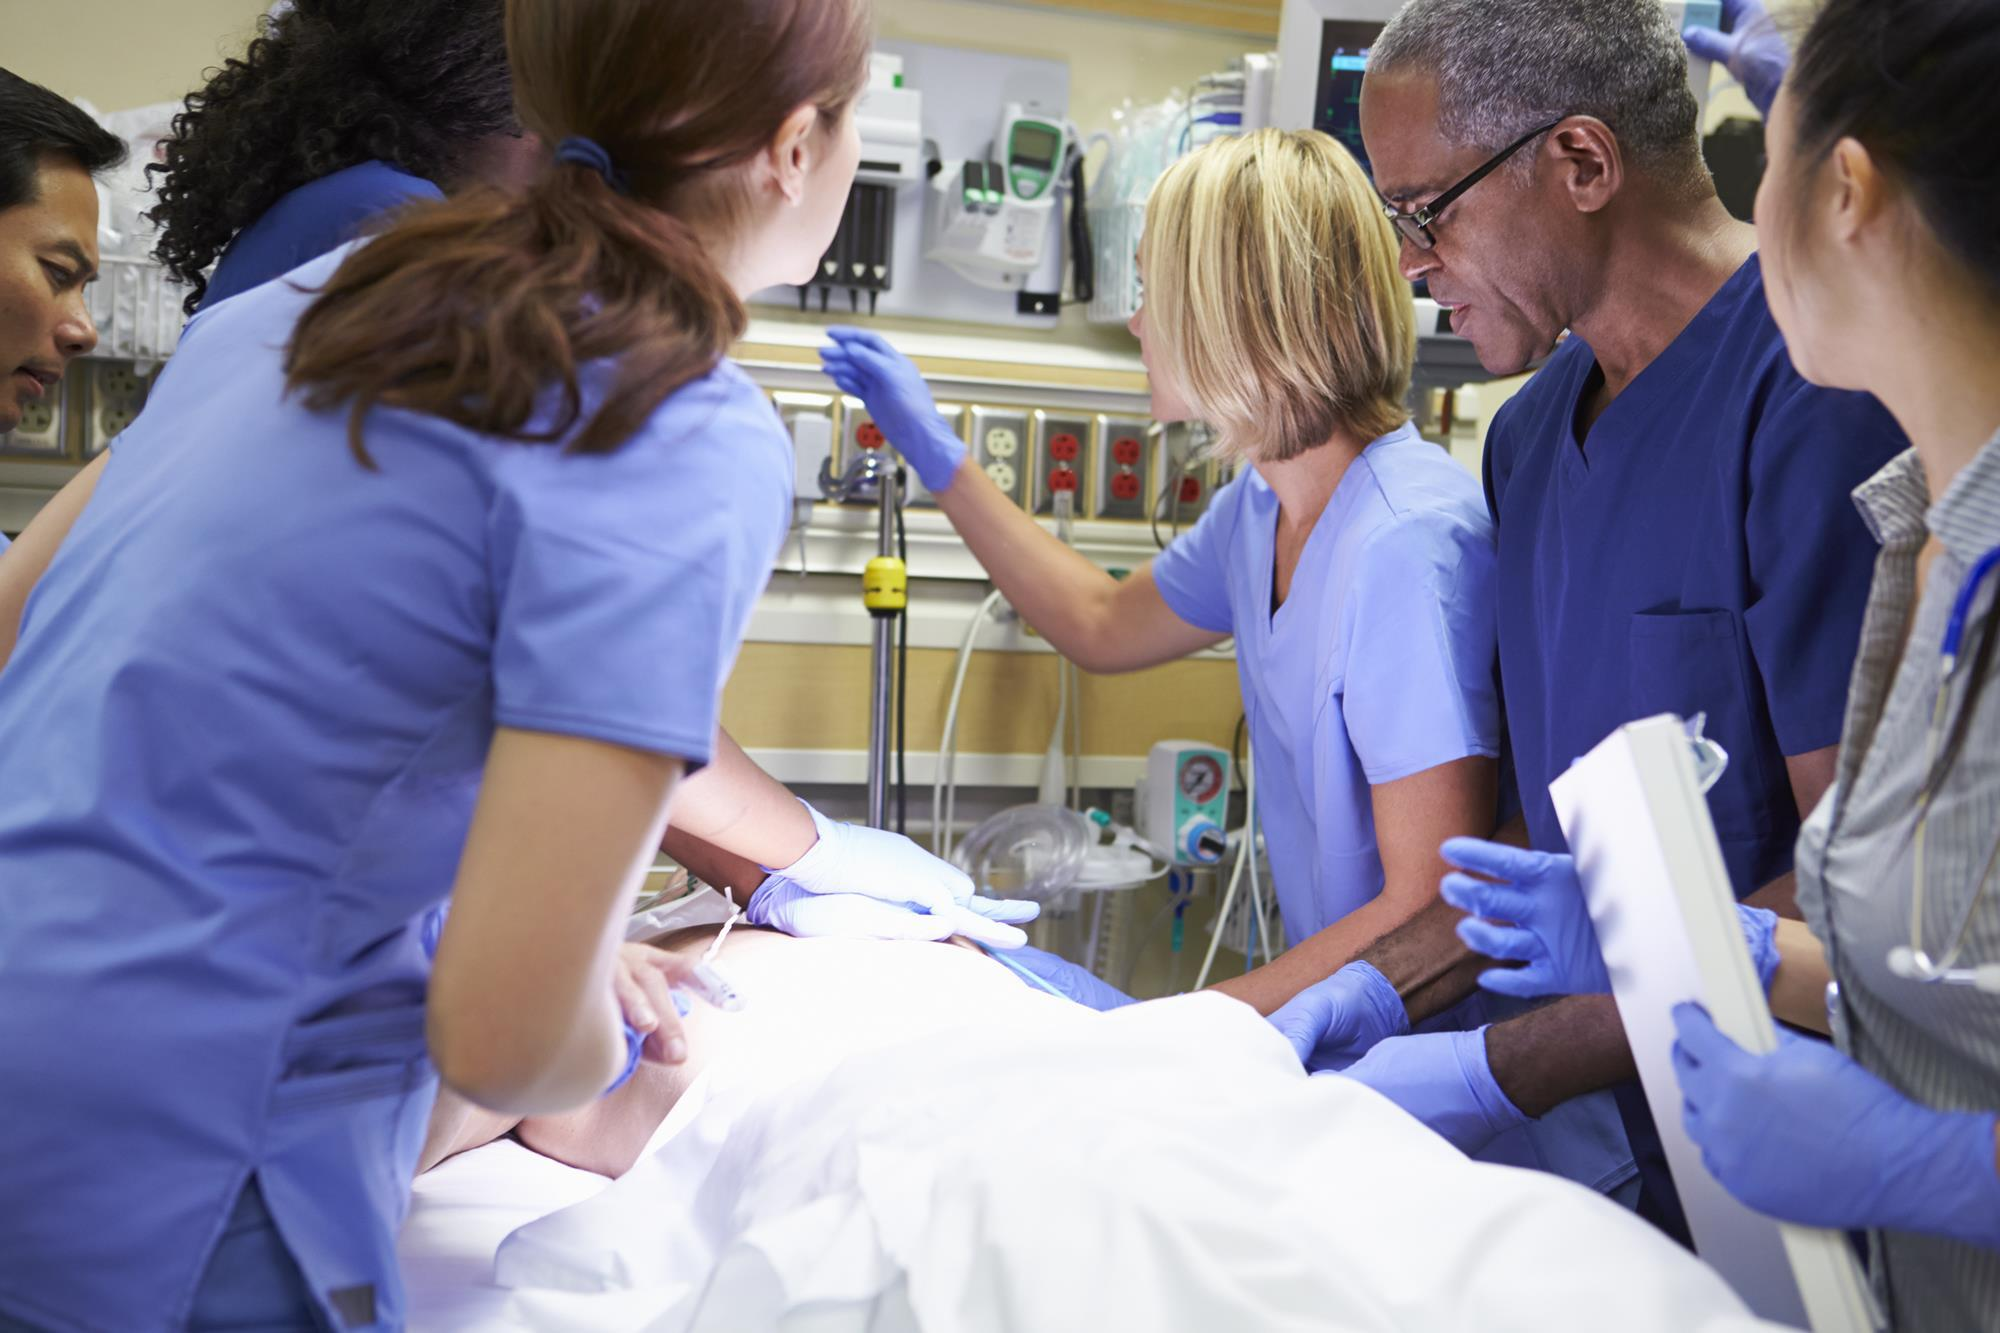 NHS blocked from accessing apprenticeship levy funds